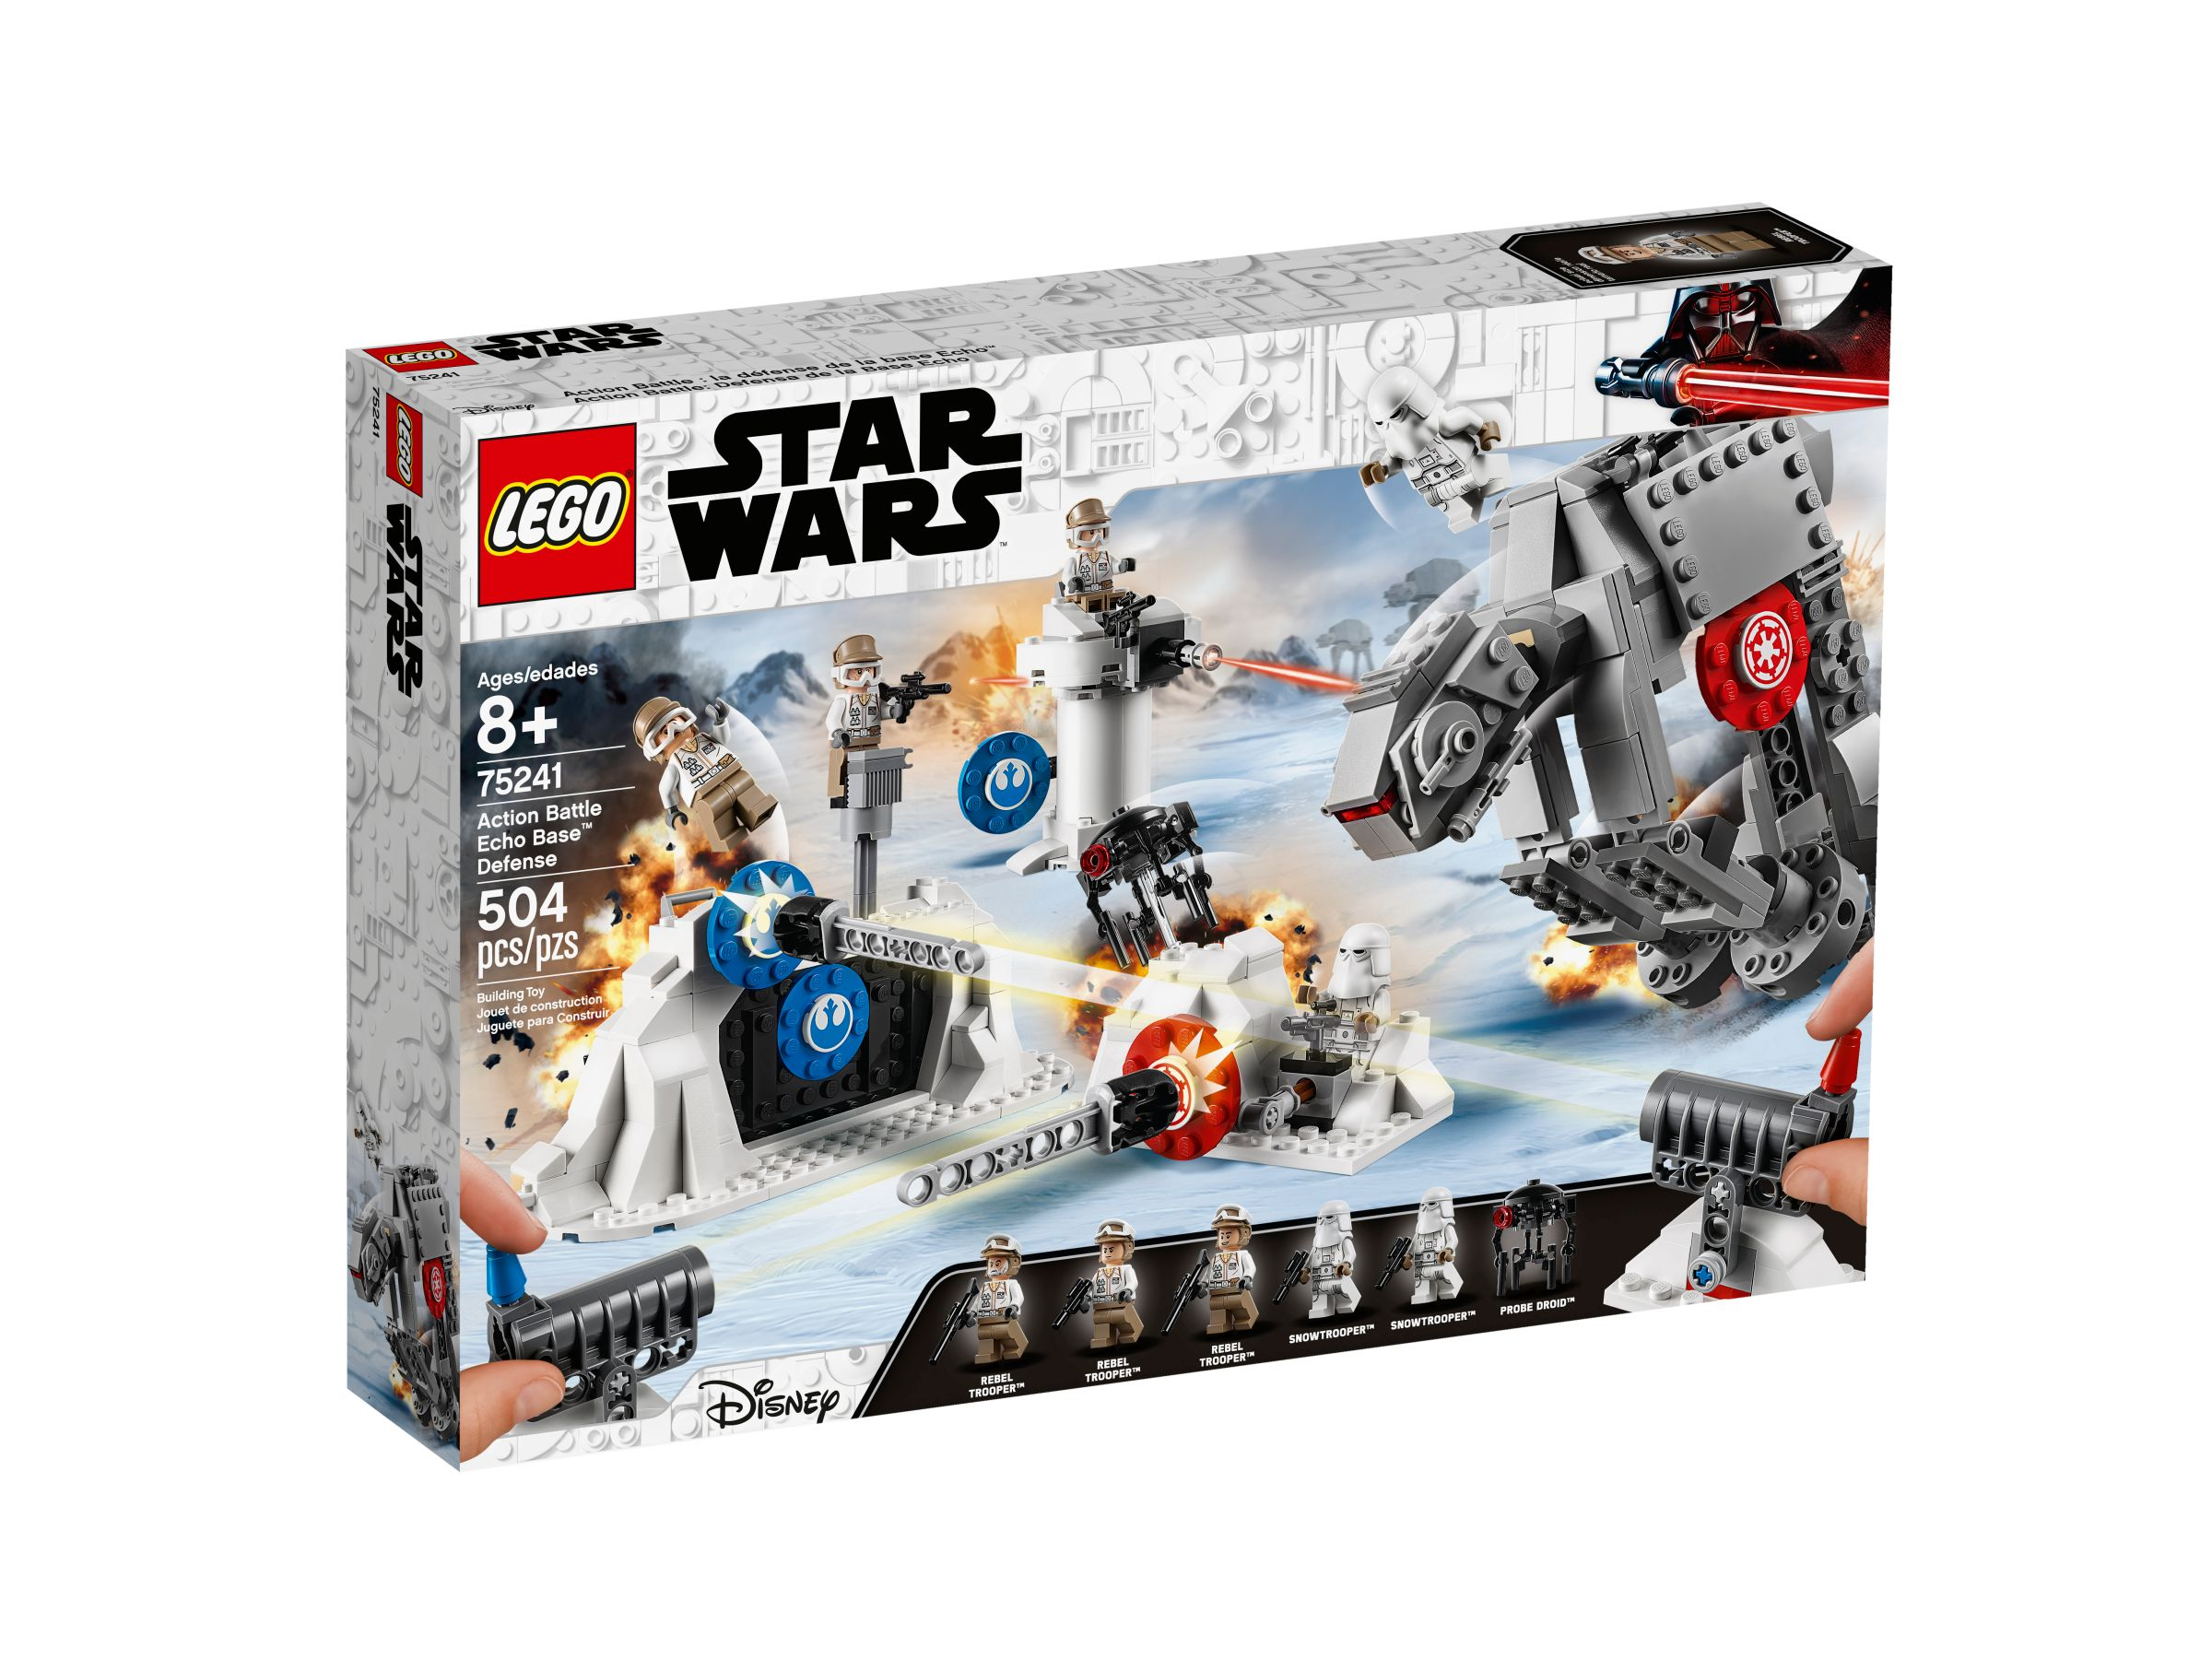 LEGO Star Wars 75241 Action Battle Echo Base™ Verteidigung LEGO_75241_alt1.jpg